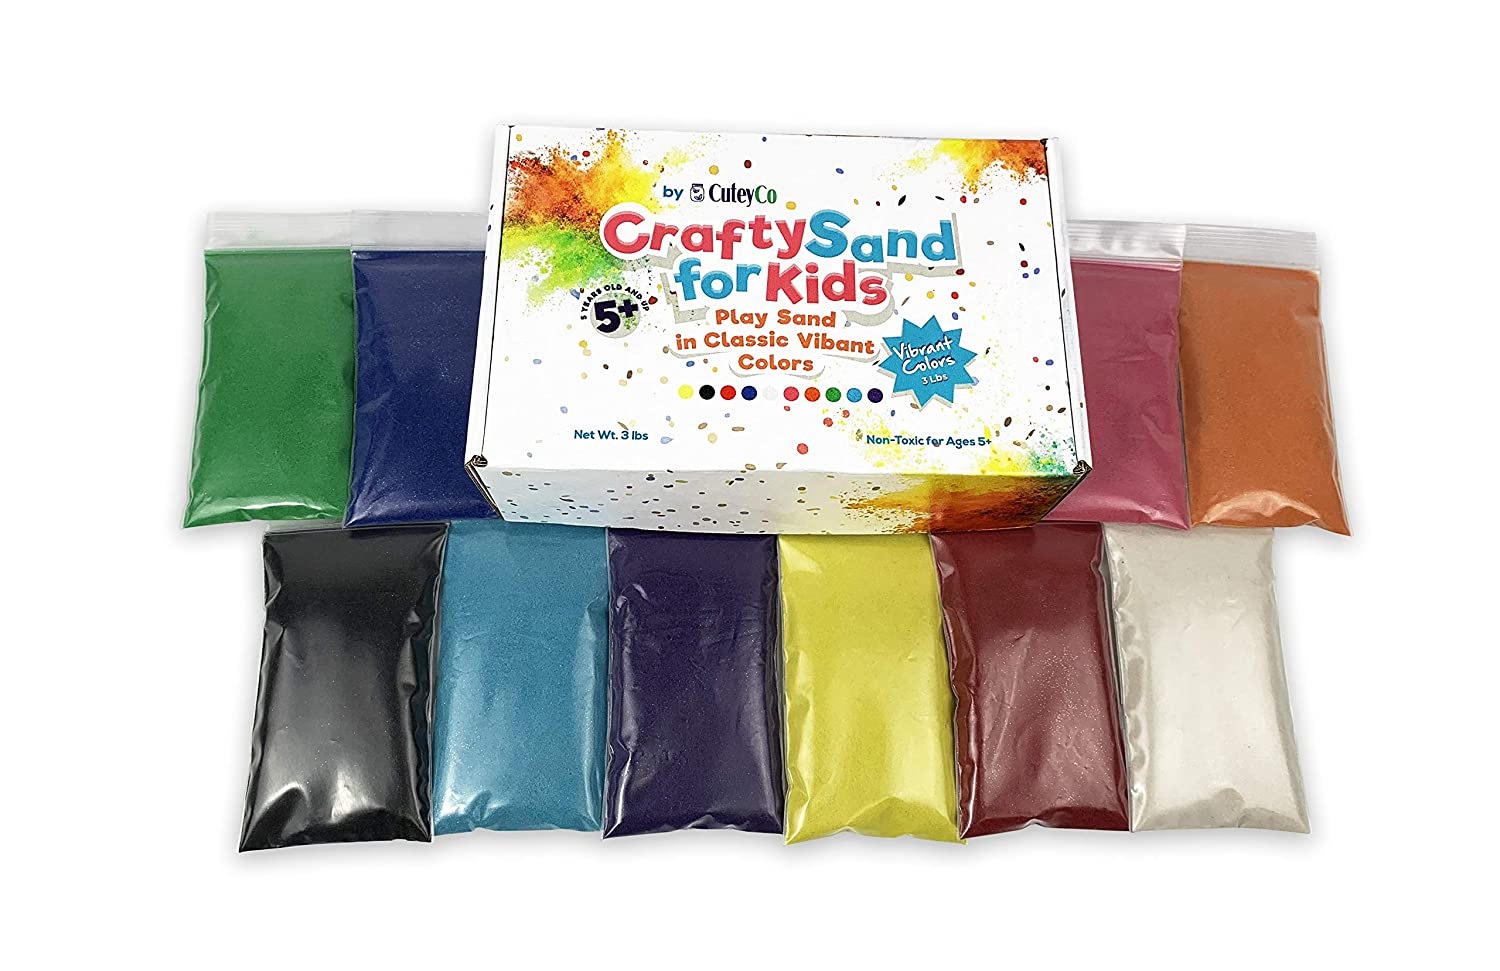 3 lbs of Vibrant Craft Sand /& Play Sand 10 Colors CuteyCo Crafty Sand for Kids